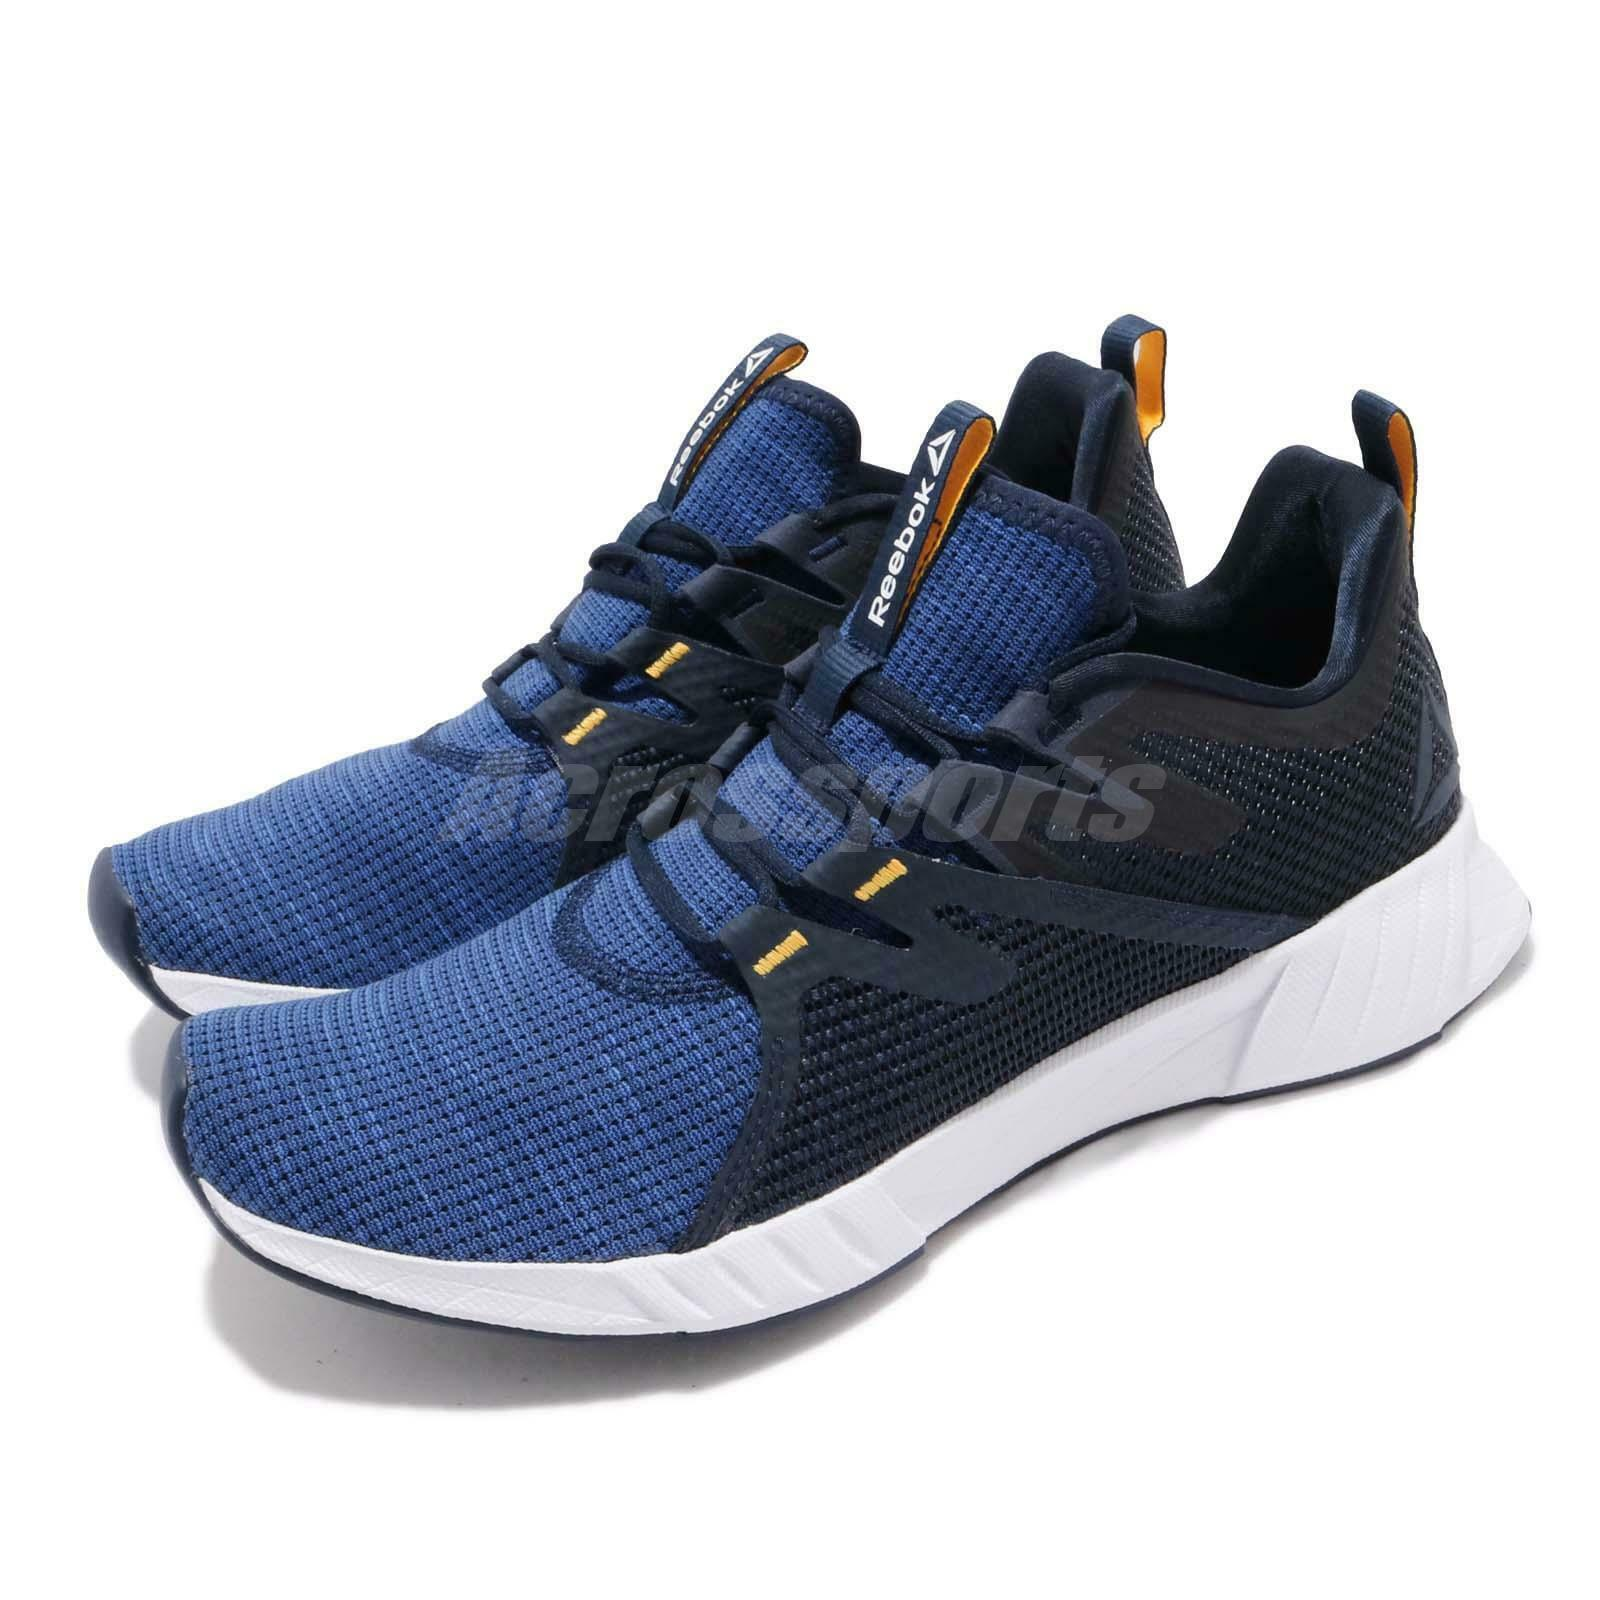 Reebok Fusium Run 2 Navy Coablt blueee White Men Running Casual shoes CN6385